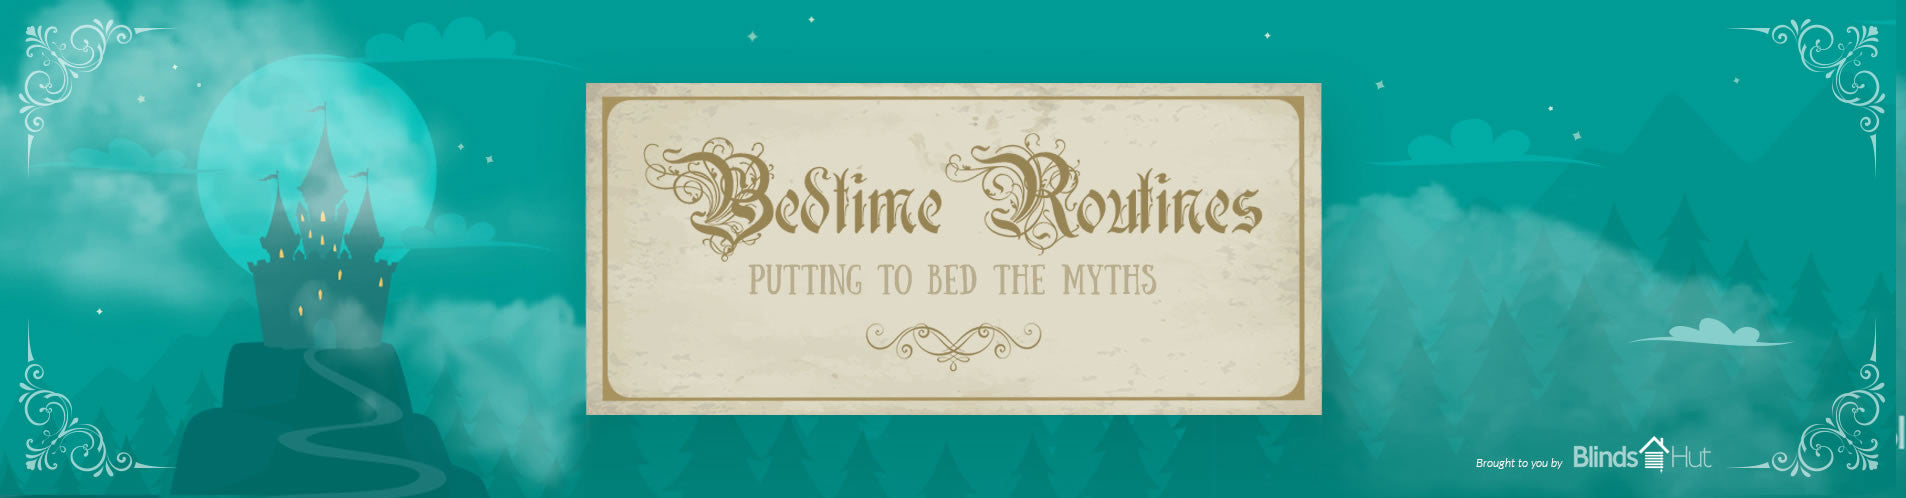 Fairy tale themed heading which reads: Bedtime routines - putting to bed the myths